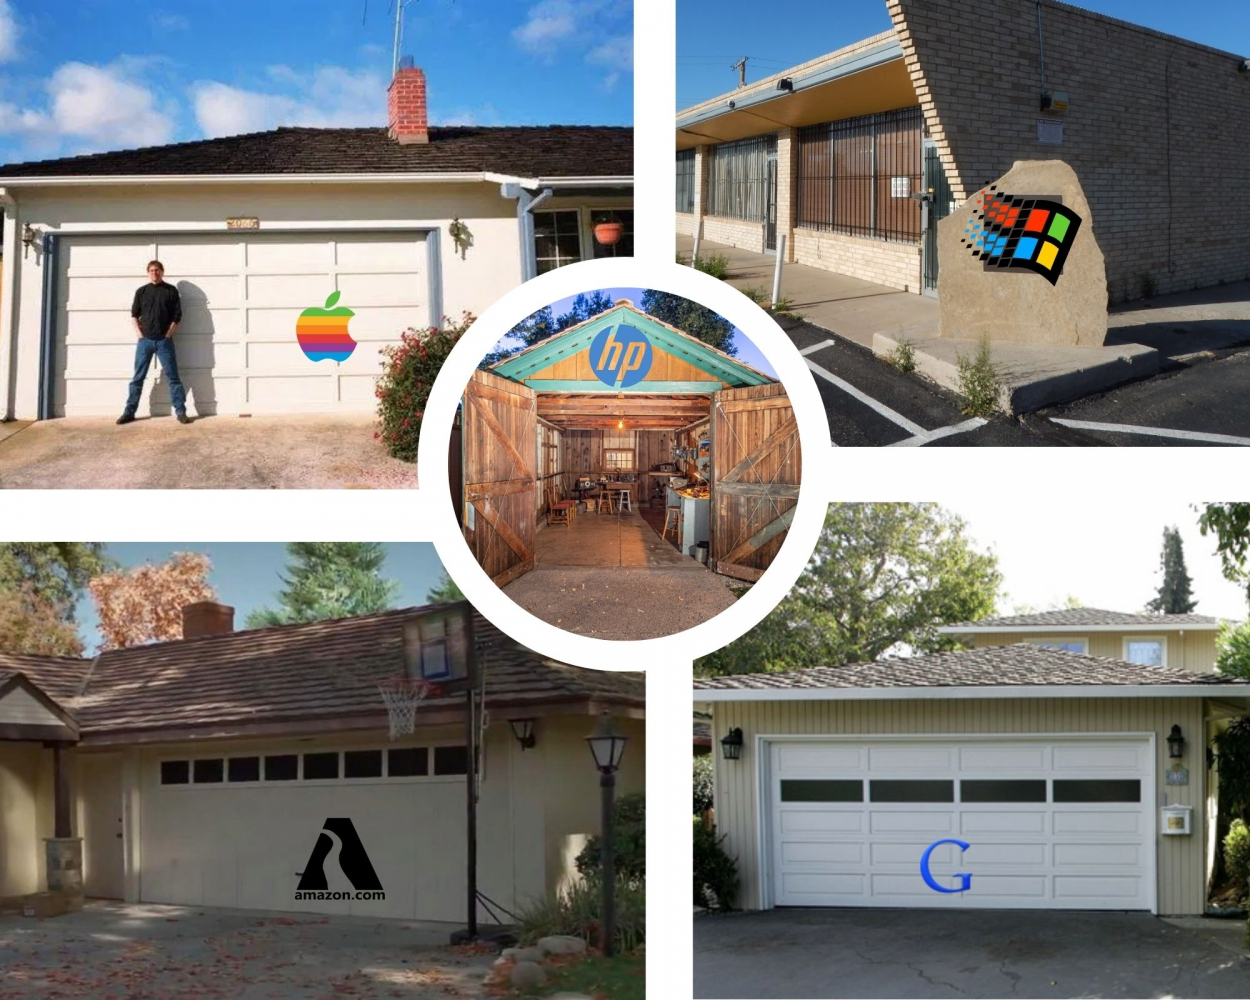 5 garages: Apple, HP, Microsoft, Amazon and Google